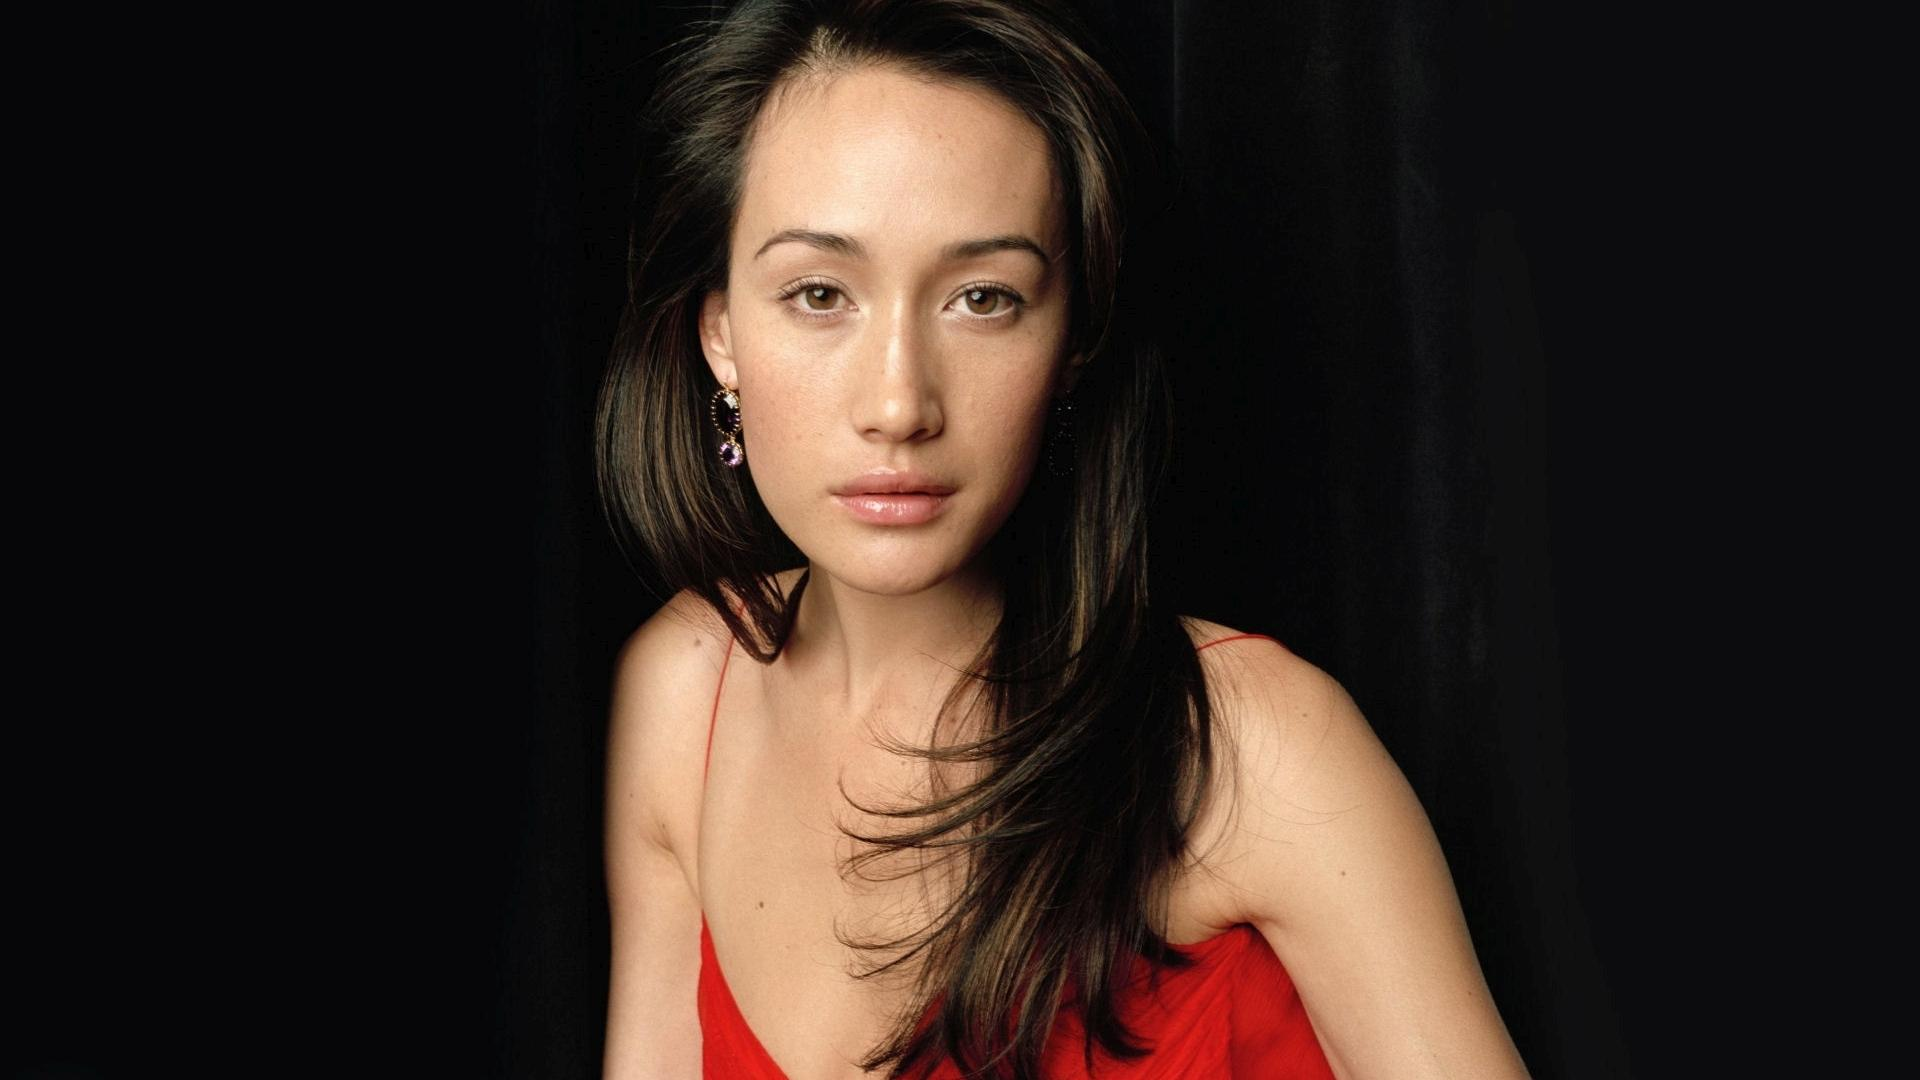 1920x1080 - Maggie Q Wallpapers 31